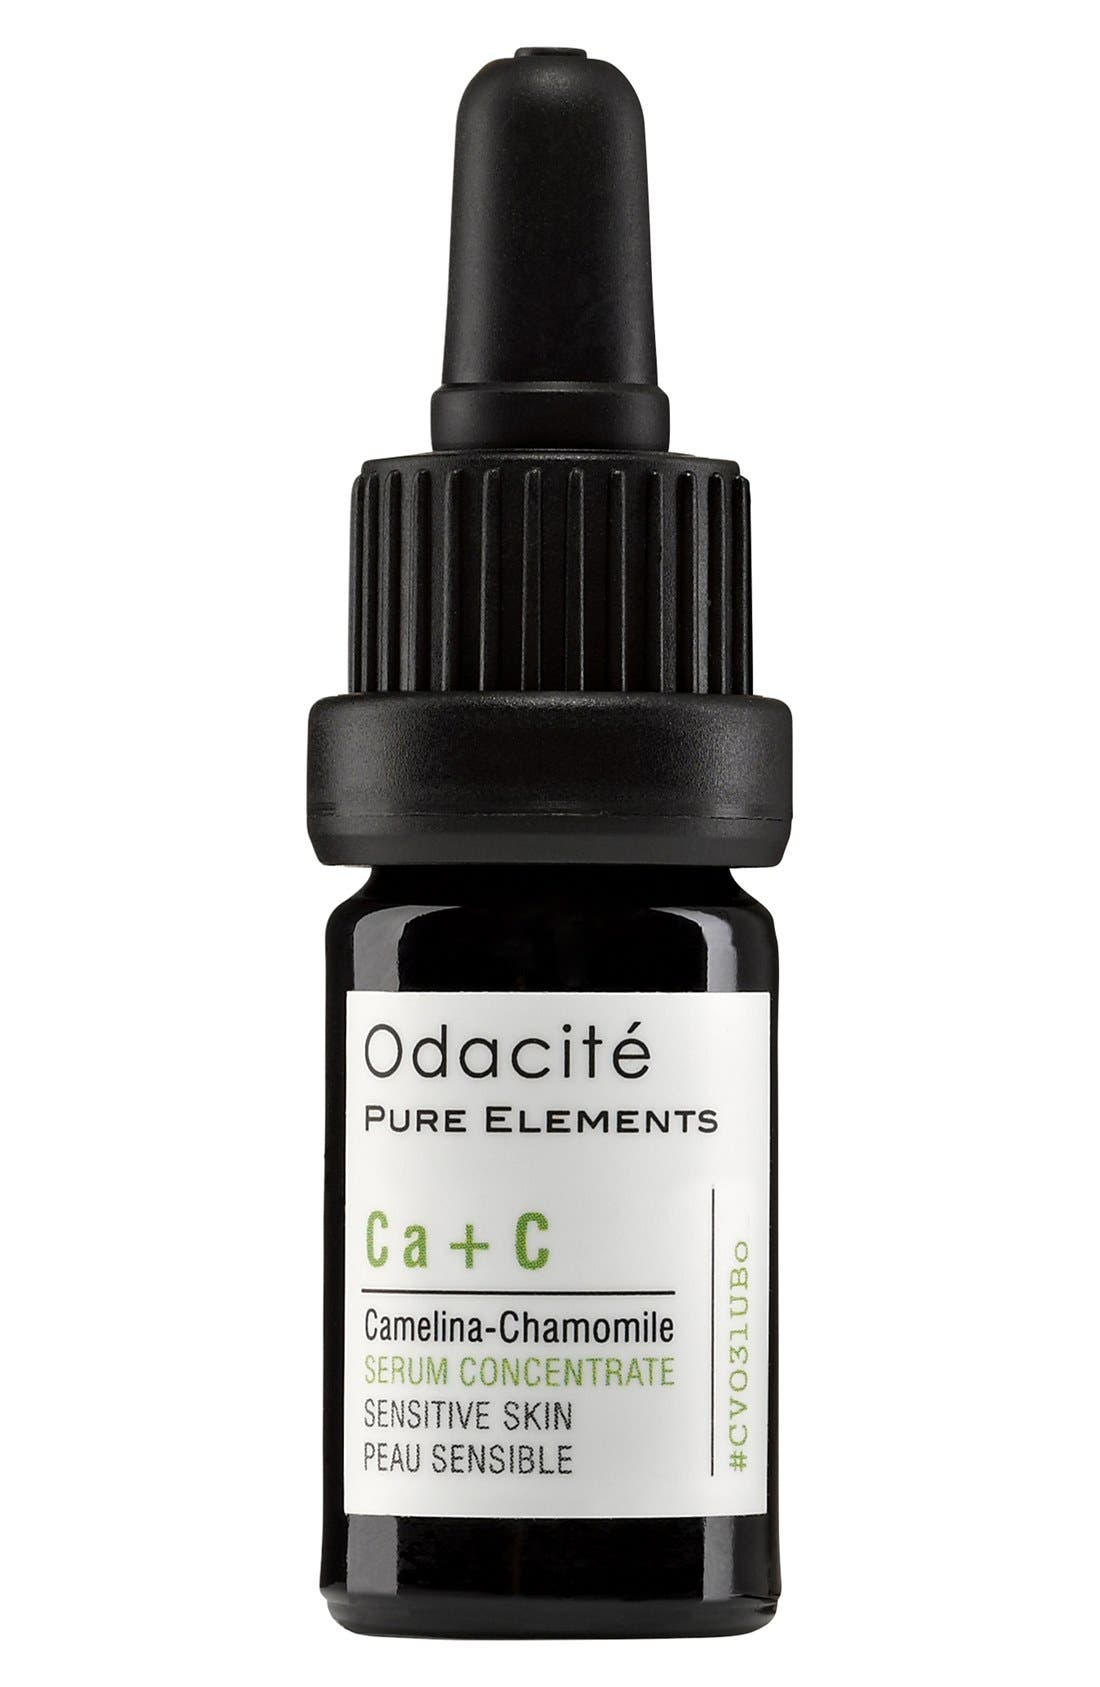 Ca + C Camelina-Chamomile Sensitive Skin Serum Concentrate,                         Main,                         color, NO COLOR